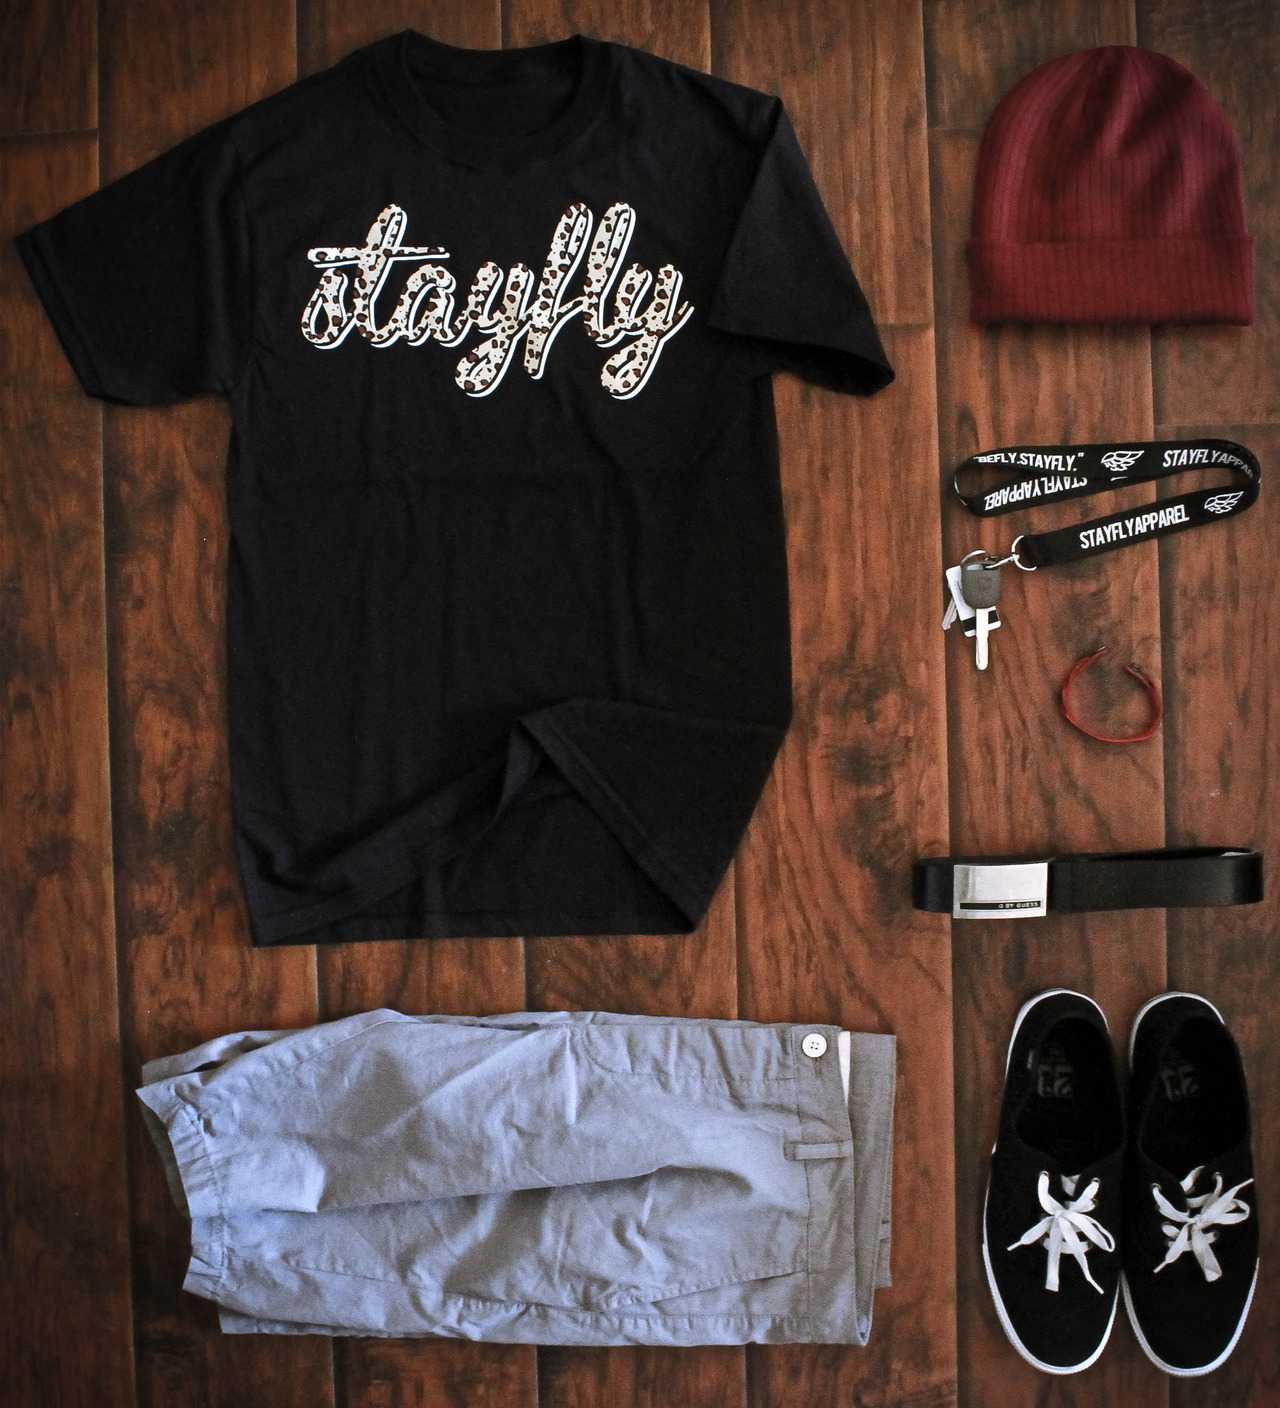 stayfly black signature leopard teeh&m grey short pantsmaroon beanie from f21stayfly lanyardred and black braceletblack guess beltblack low-cut shoes